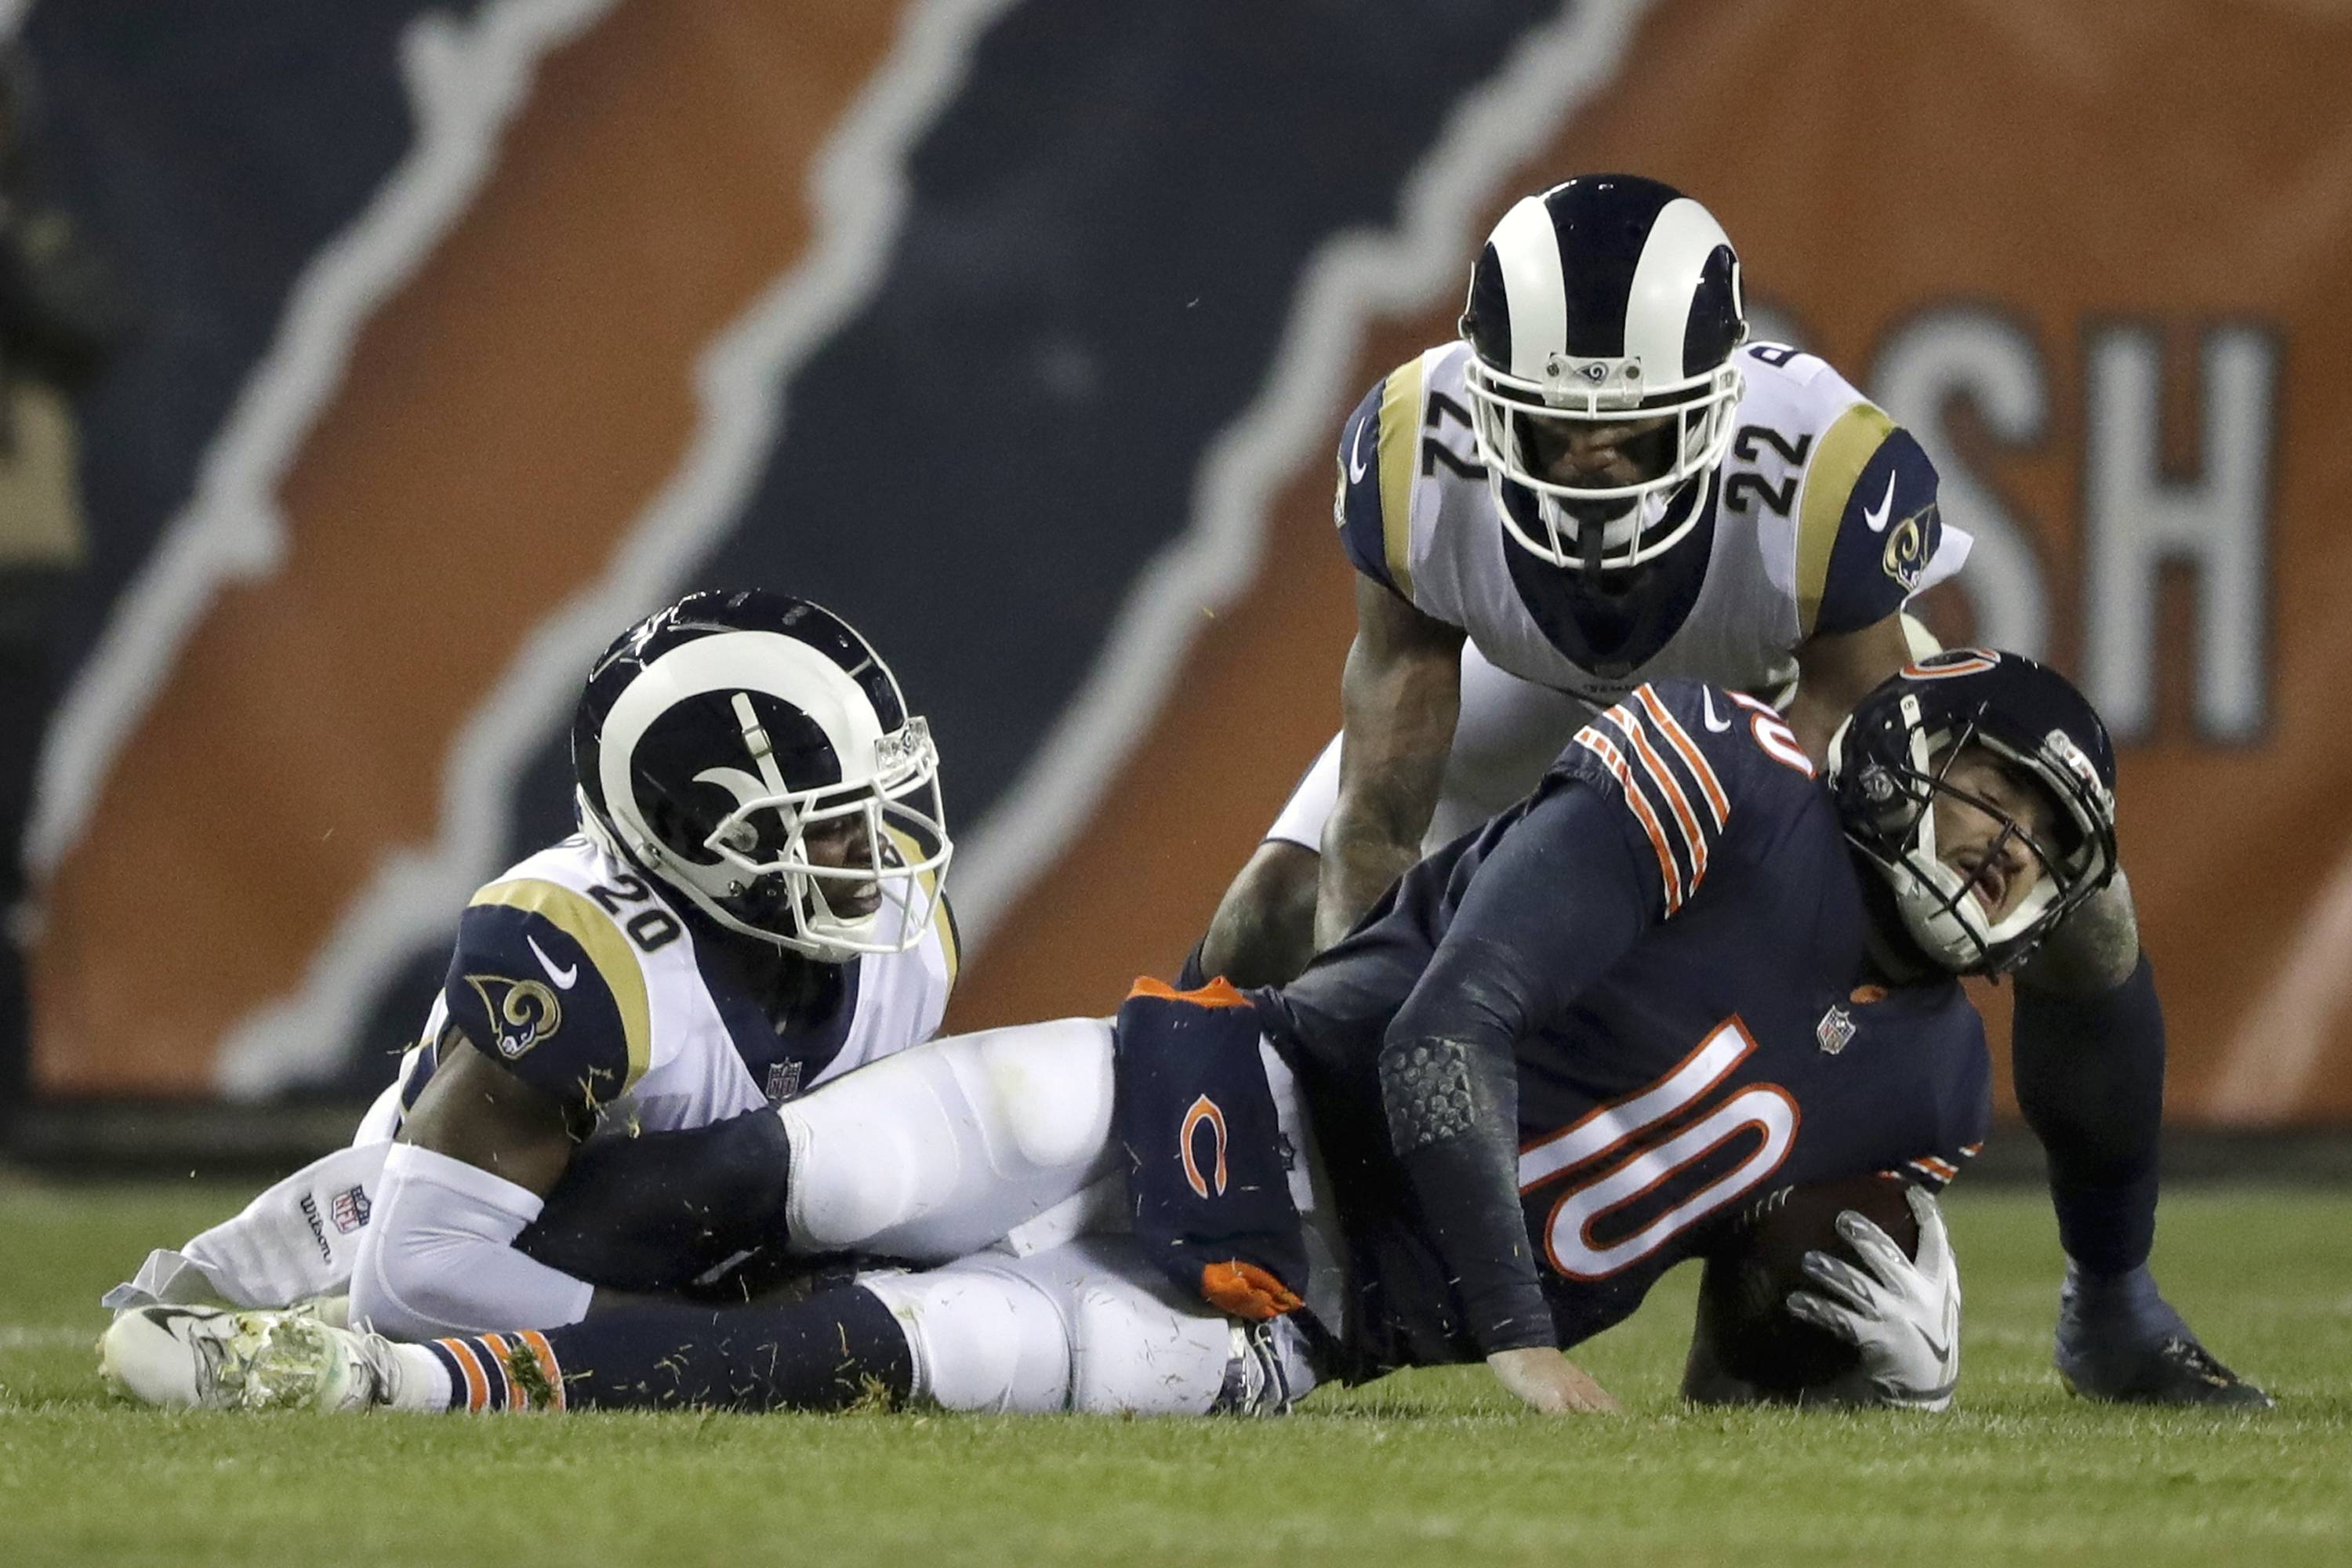 Chicago Bears quarterback Mitchell Trubisky (10) is sacked by Los Angeles Rams free safety Lamarcus Joyner (20) during the first half of an NFL football game Sunday, Dec. 9, 2018, in Chicago. (AP Photo/Nam Y. Huh)